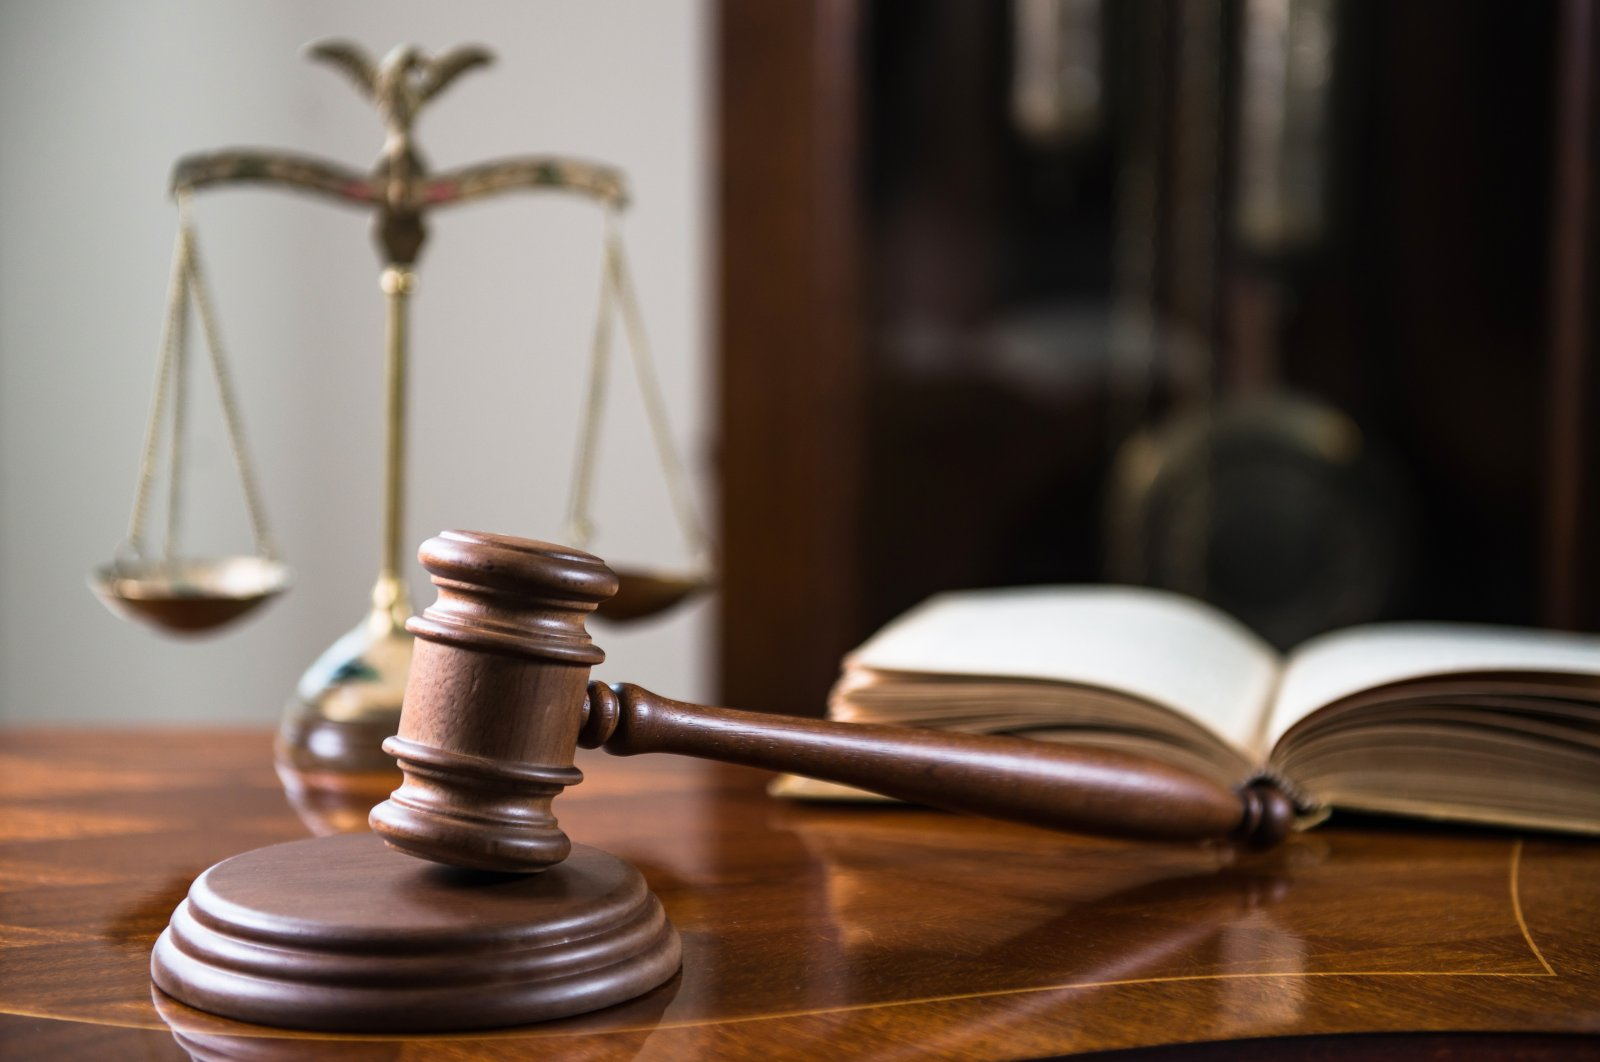 W.L. is implicated in seven counts of torture and sexual assault while a court date for his trial is not set yet. (Shutterstock Photo)